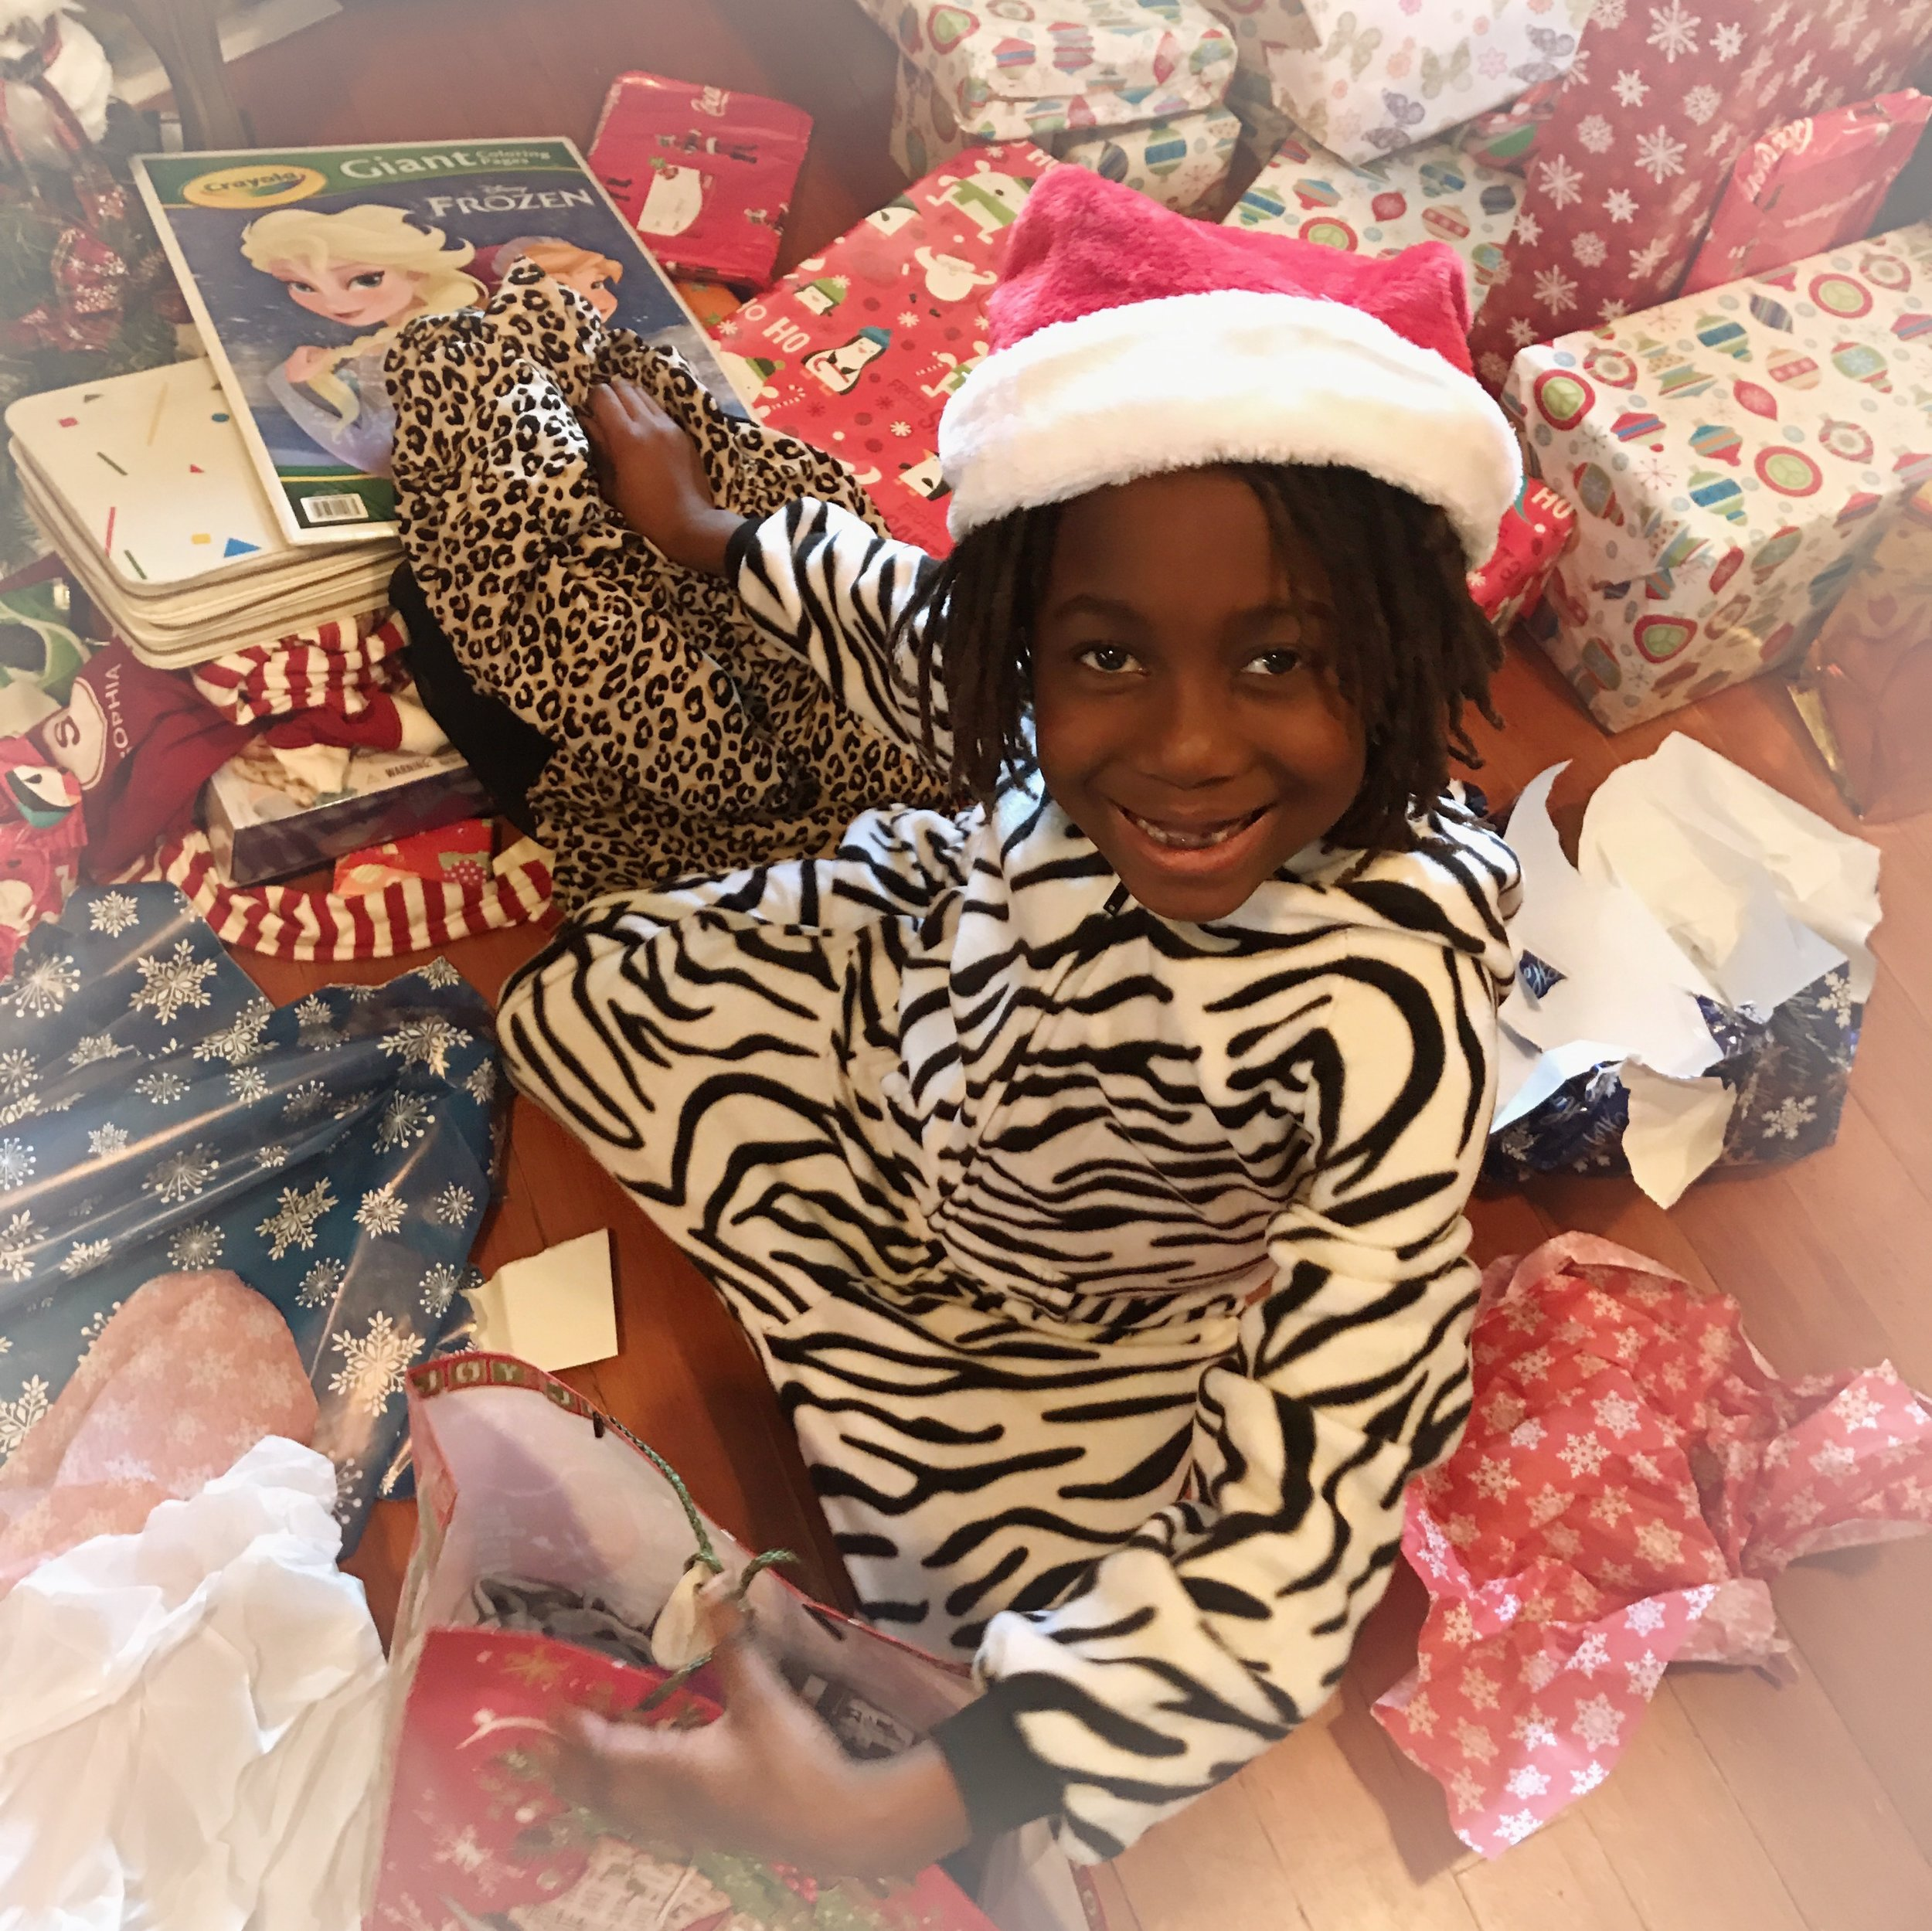 """Junior"" as she now insists on being called, reveling in the glory of Christmas gifts!"